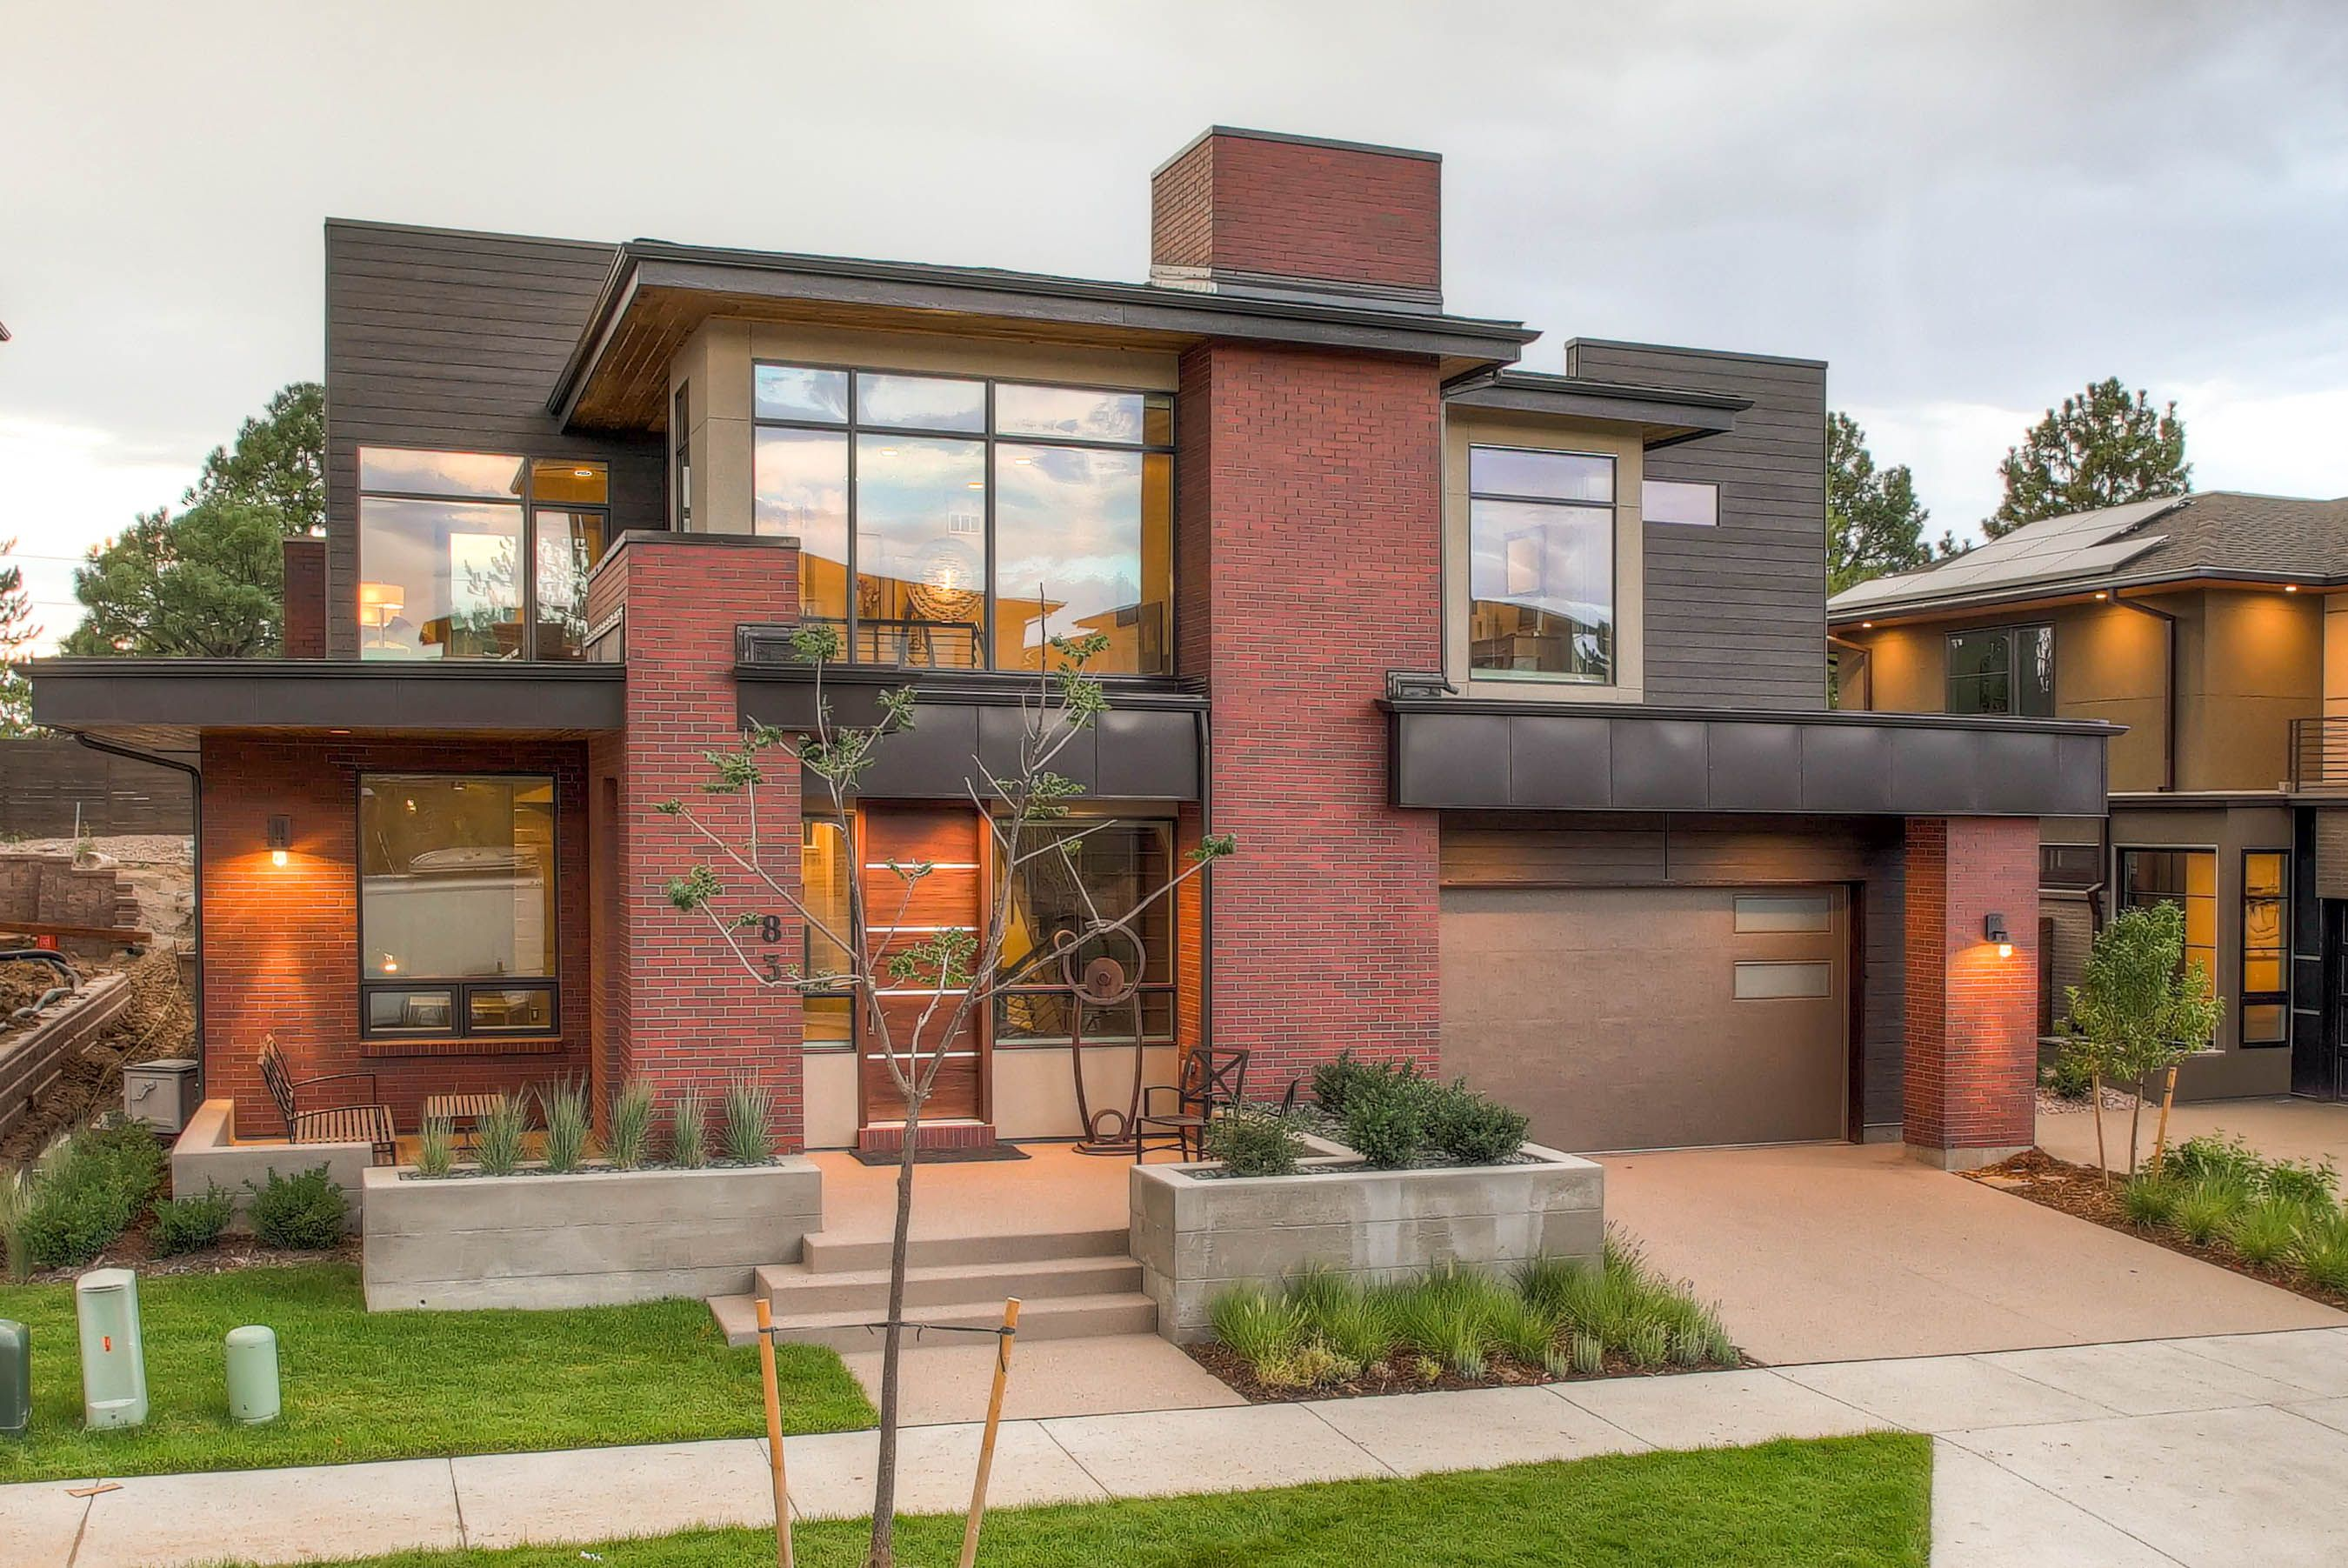 The Very Modern Exterior Of The Home Features Red Brick And Dark